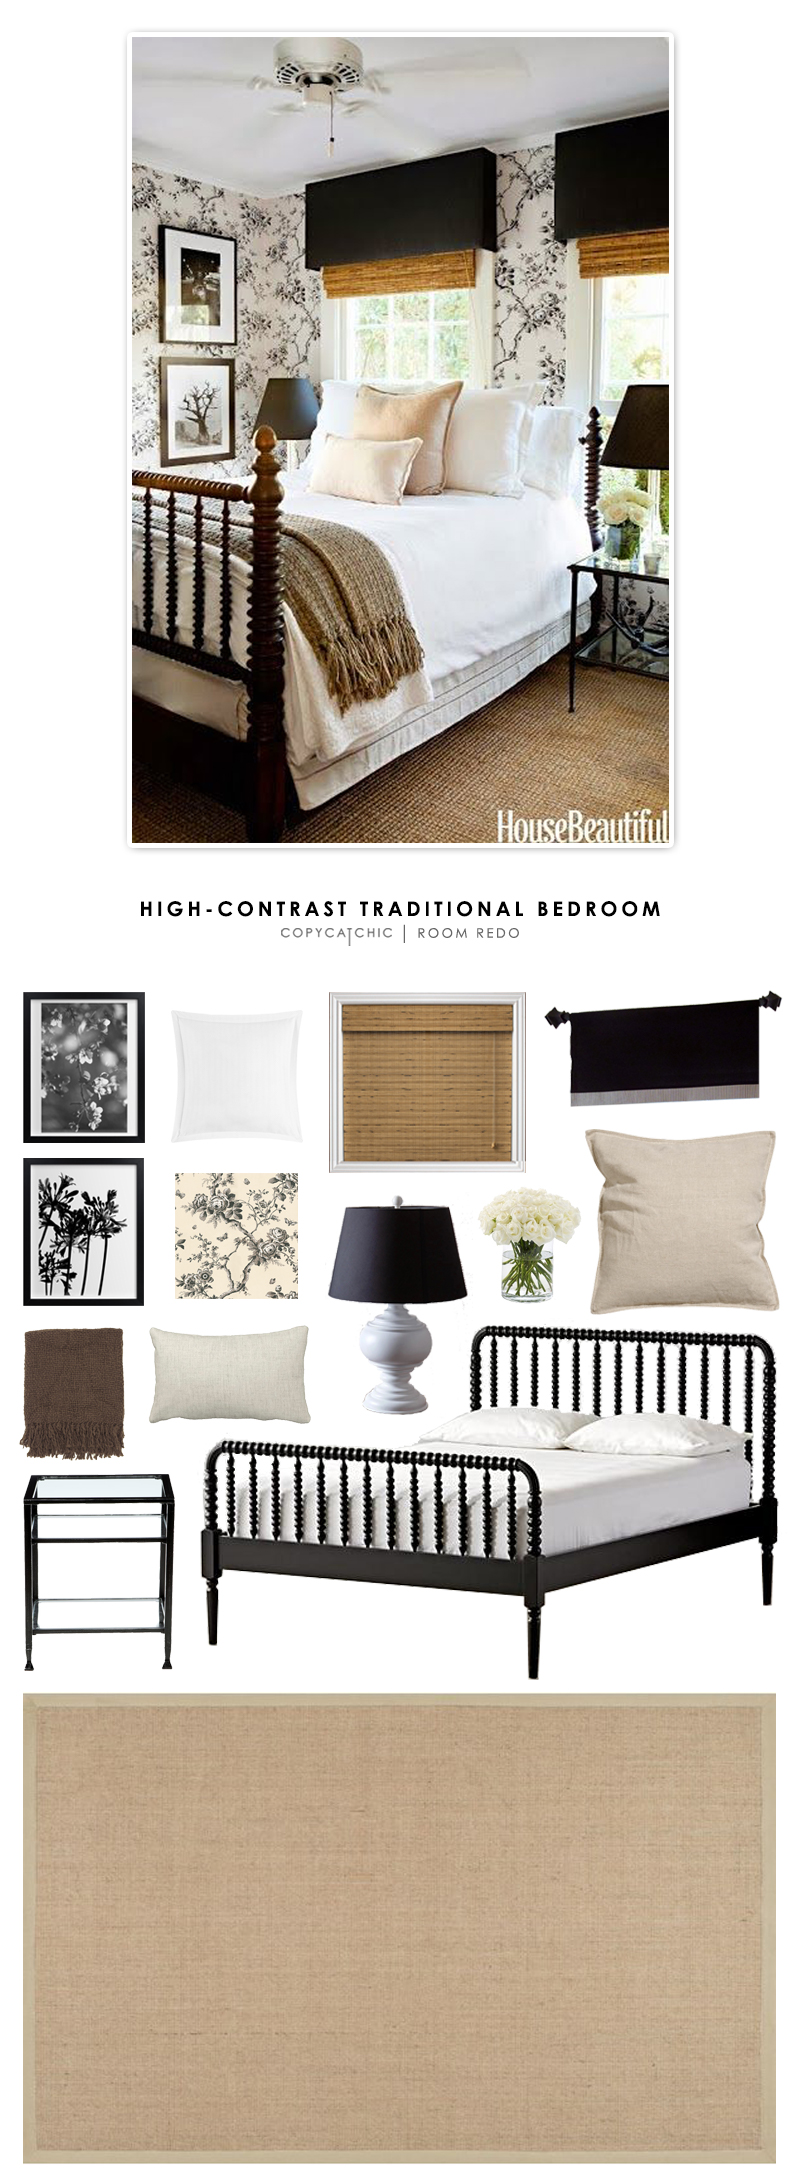 A modern country chic guest bedroom in black and white designed by Tobi Tobin and featured in House Beautiful. Recreated for less by Copy Cat Chic